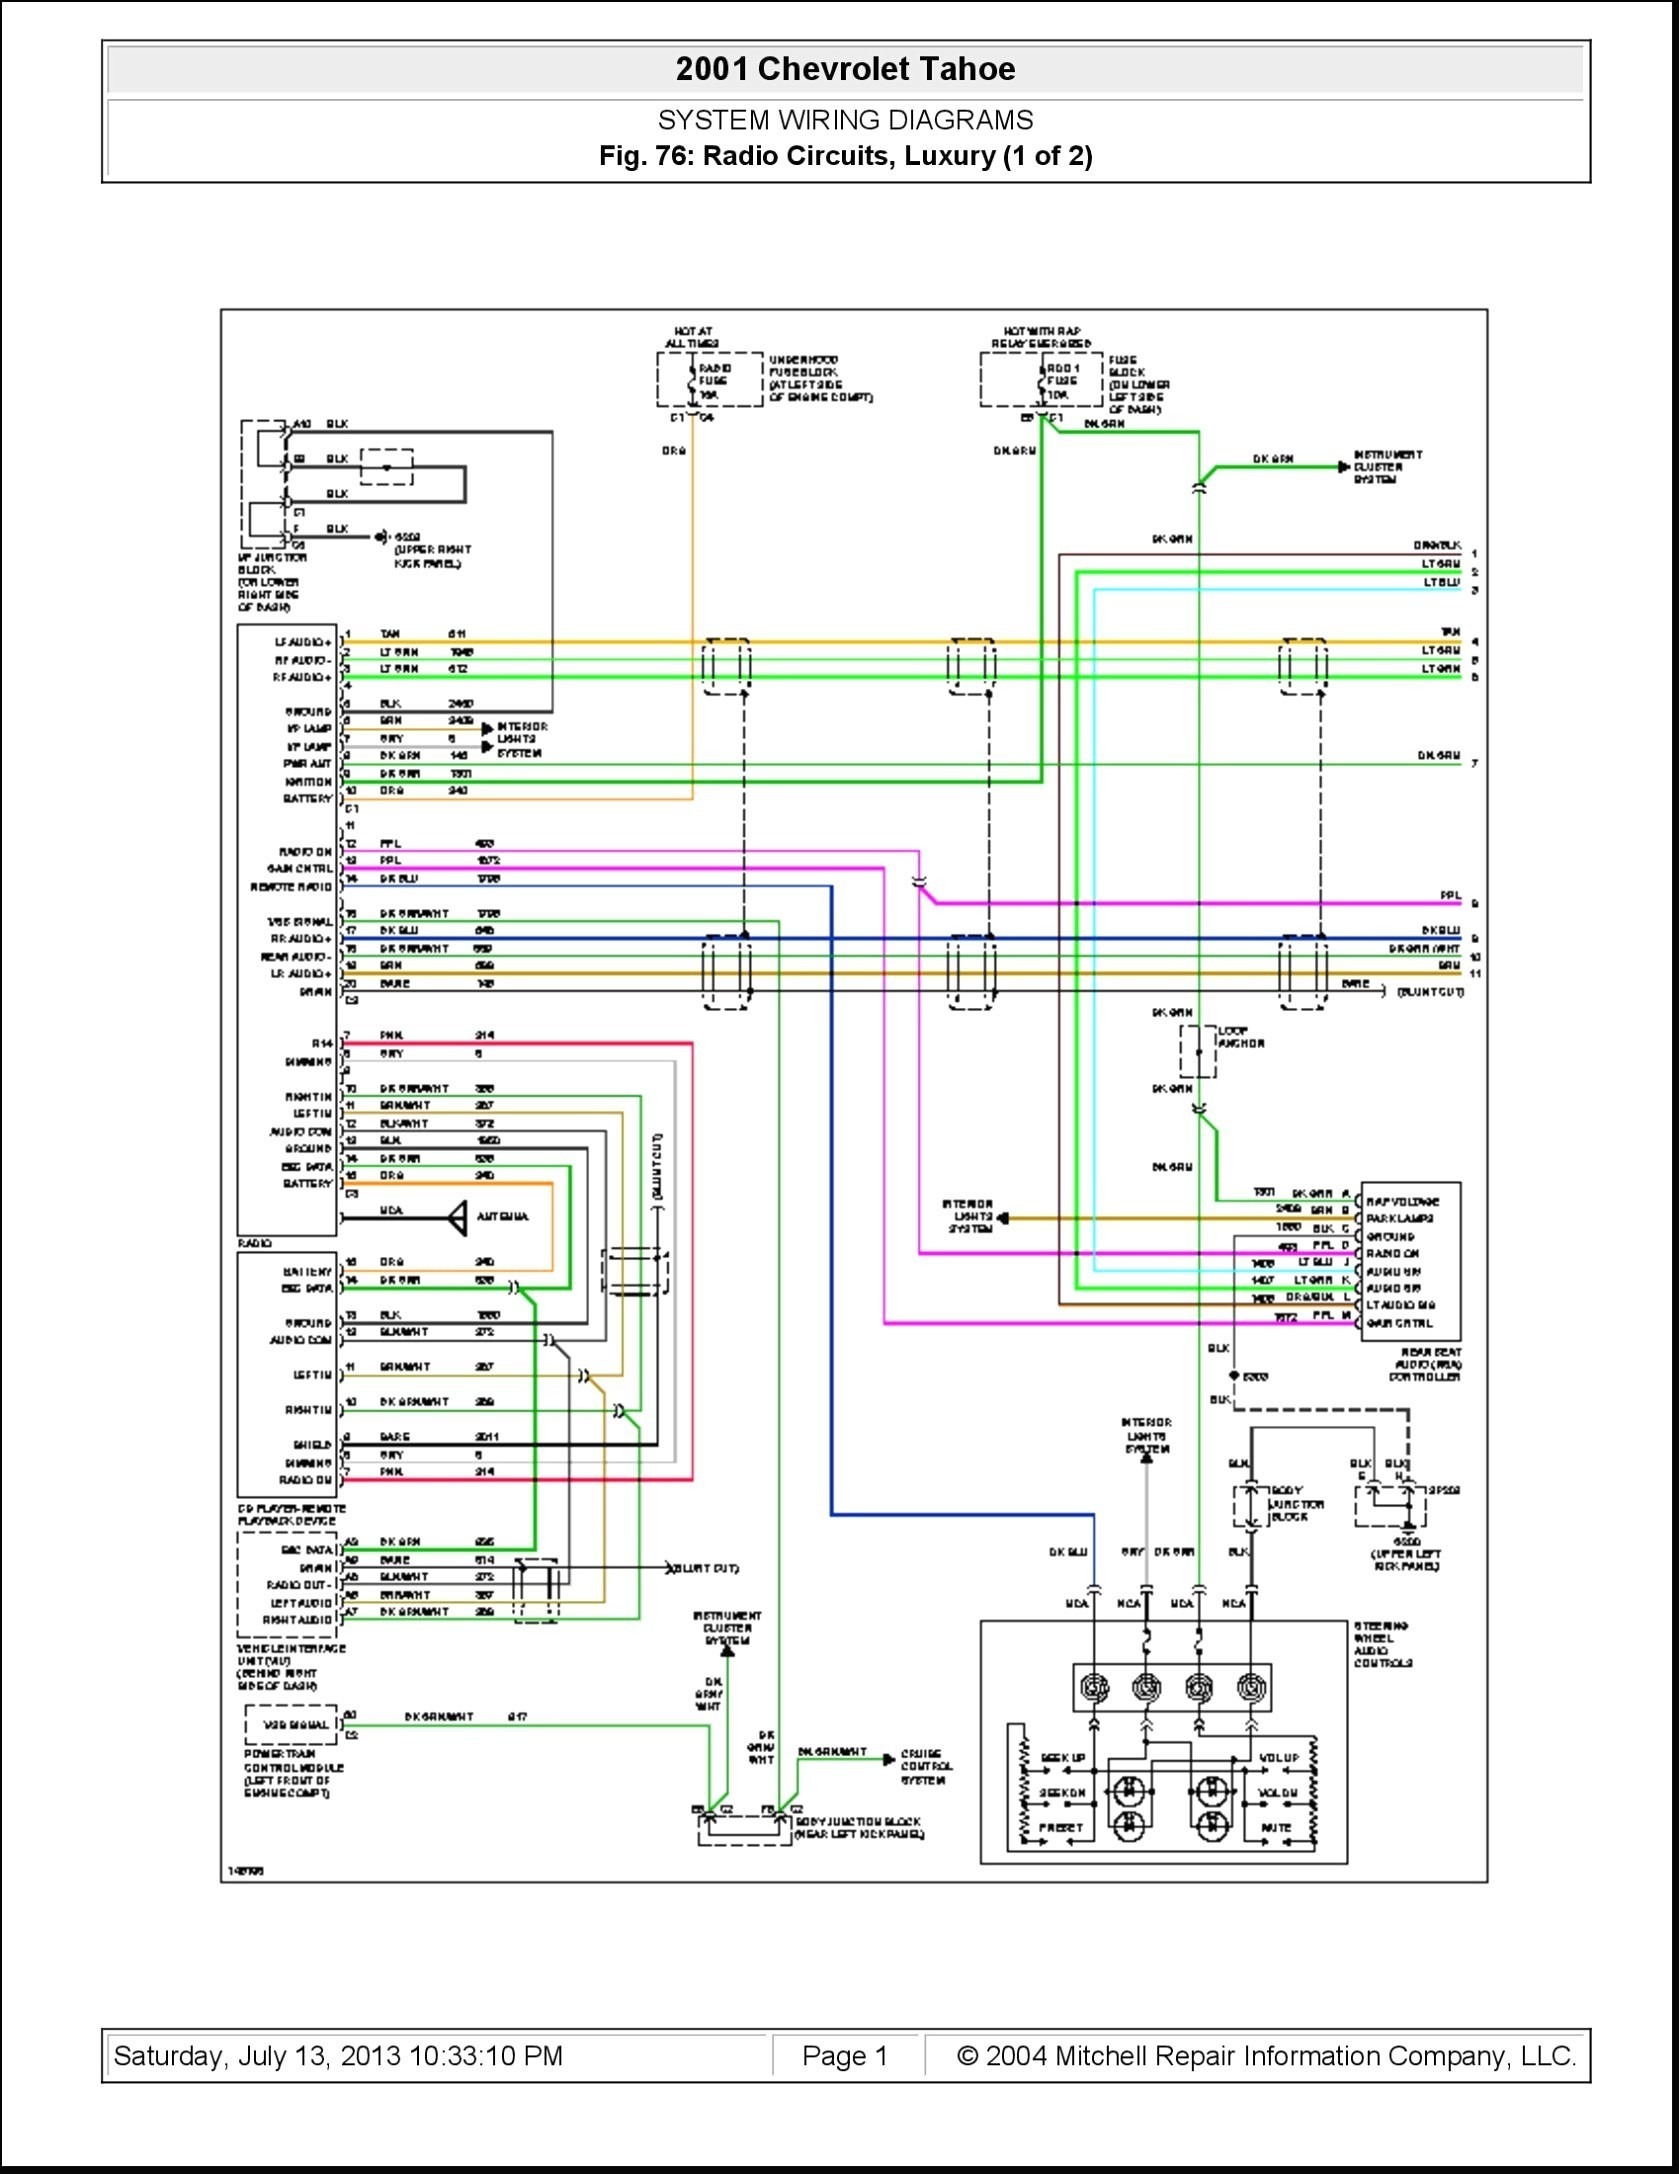 2004 Chevy Equinox Wiring Diagram Well Detailed Wiring Diagrams \u2022 05 Equinox  Motor Diagram Chevy Equinox Cooling System Diagram